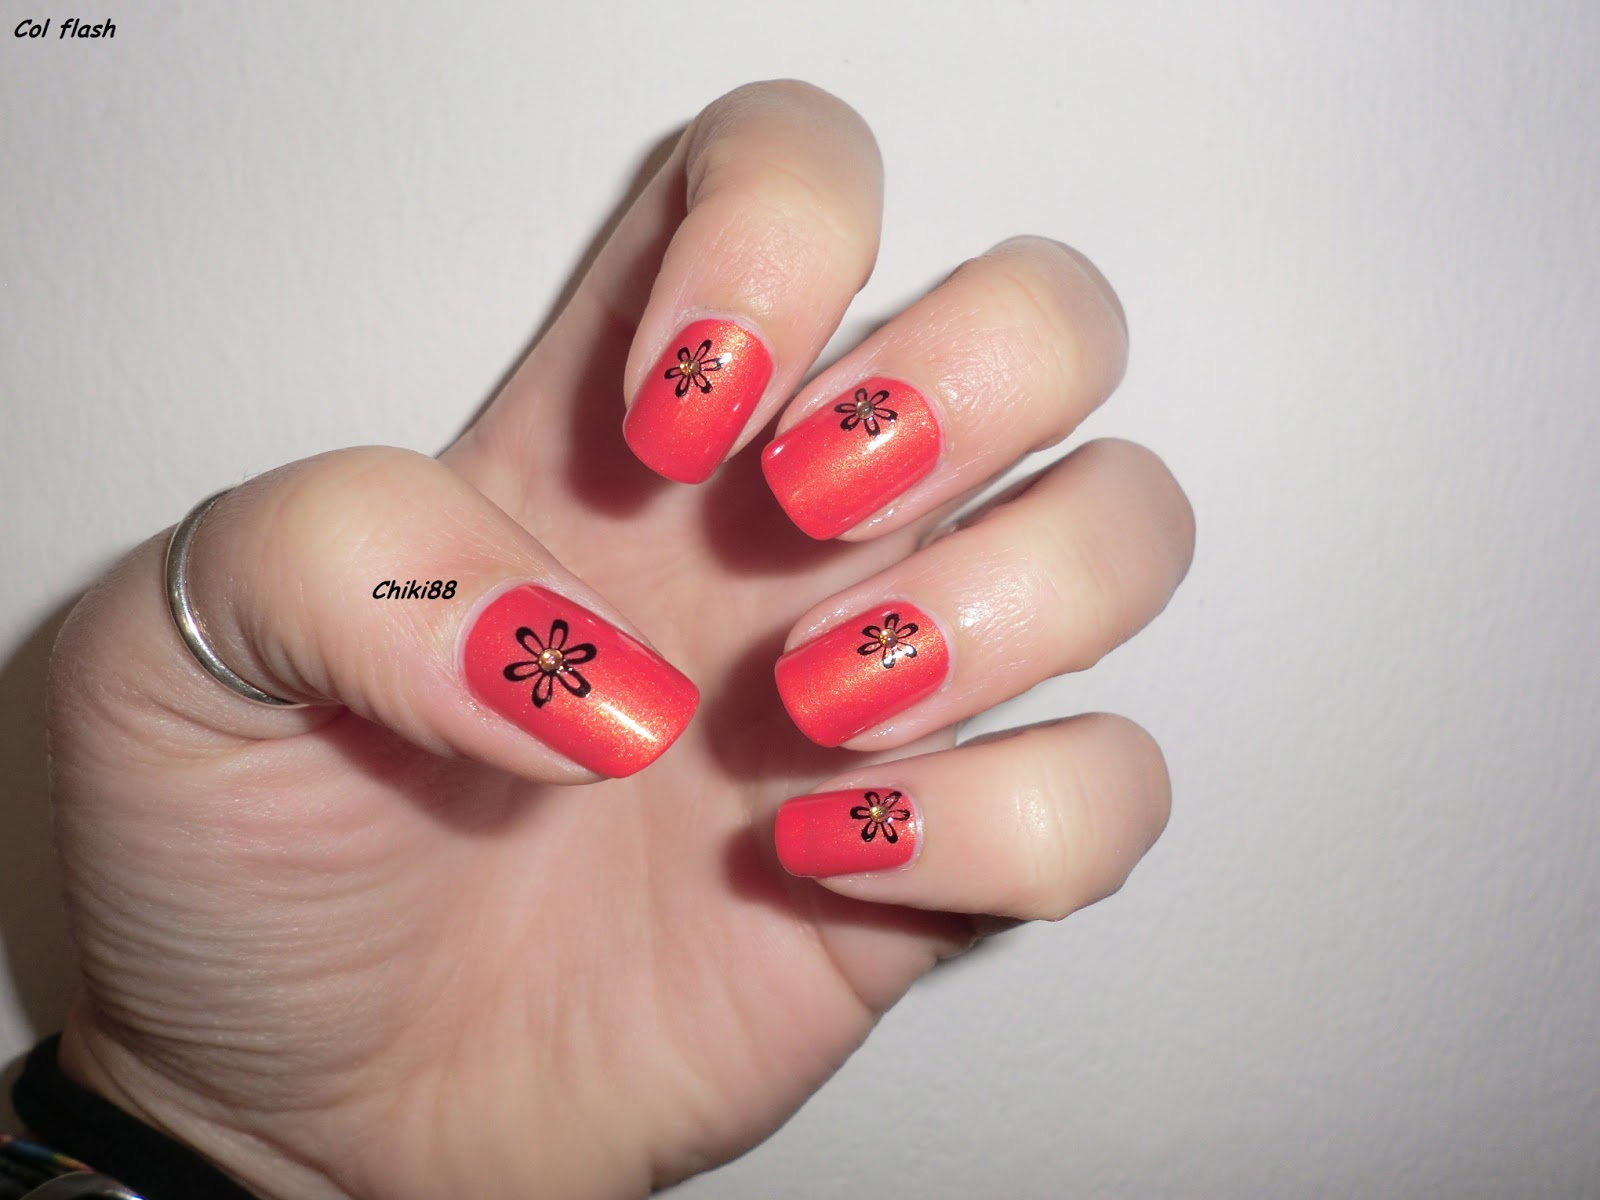 CHIKI88... my passion for nails!: Nail art - Orange flower!